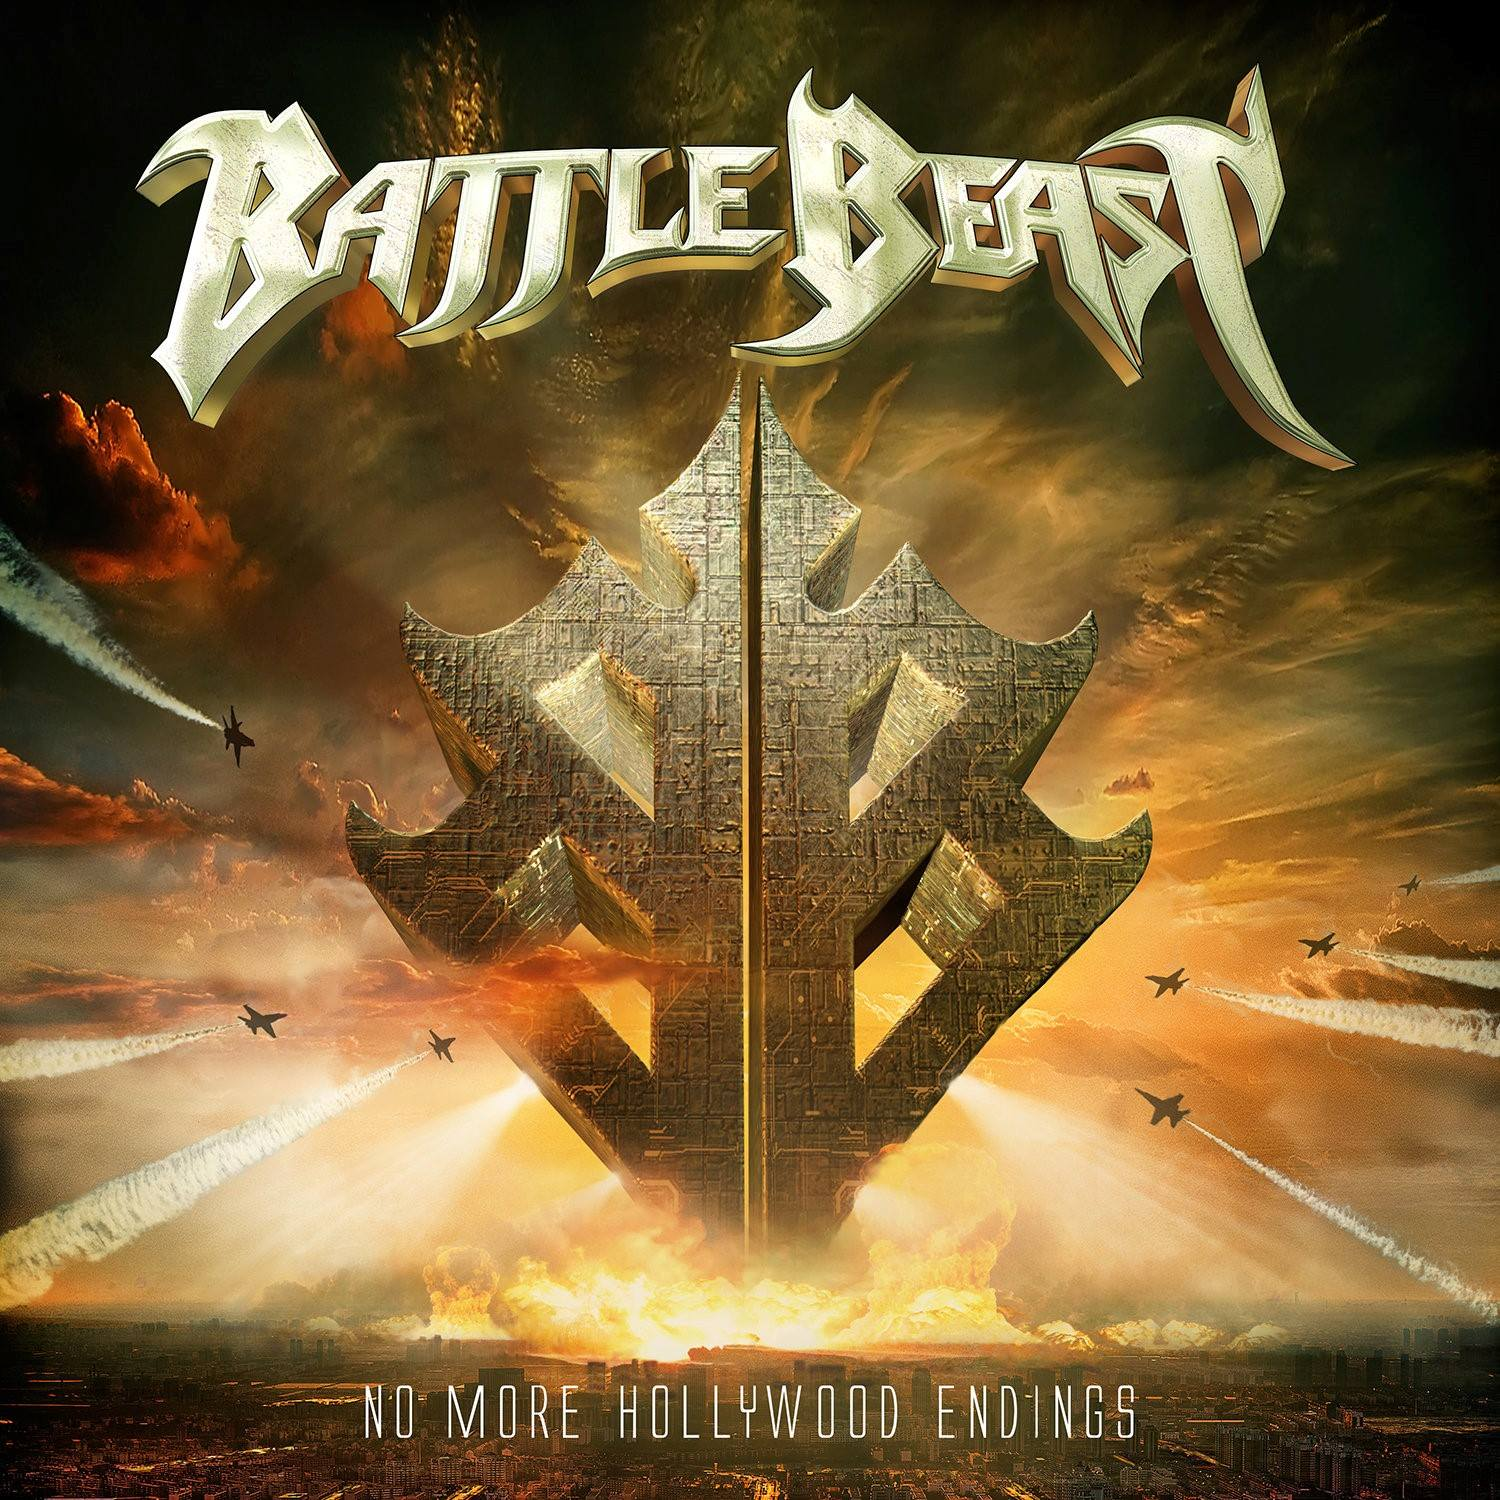 battle beast no more hollywood endings album coverart